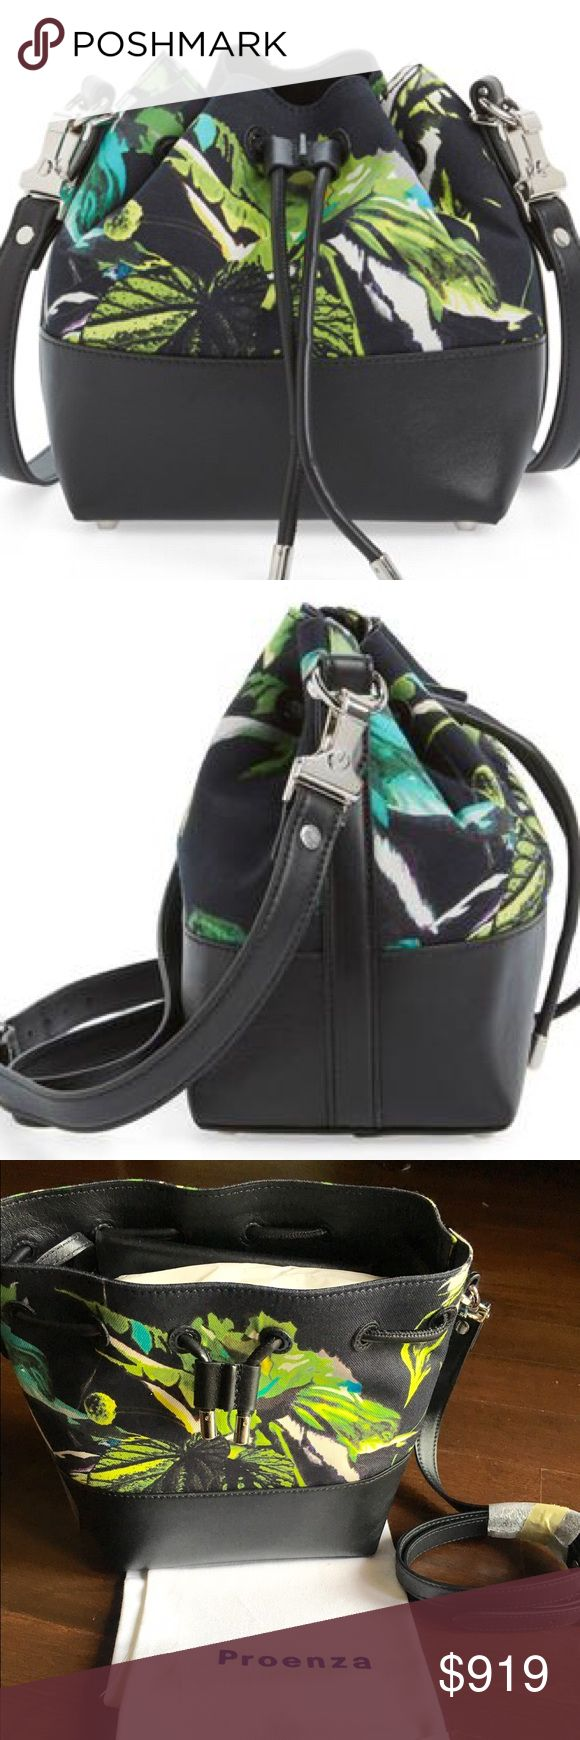 Proenza Schouler small bucket bag A tropical floral-print finish adds to the clean, contemporary vibe of an Italian-made bucket bag accented with polished silvertone hardware and calfskin leather. Drawstring closure. Optional, adjustable crossbody strap. Removable snap-flap pouch. Protective metal feet. Canvas/calfskin leather. By Proenza Schouler; made in Italy. Designer Handbags. Proenza Schouler Bags Shoulder Bags